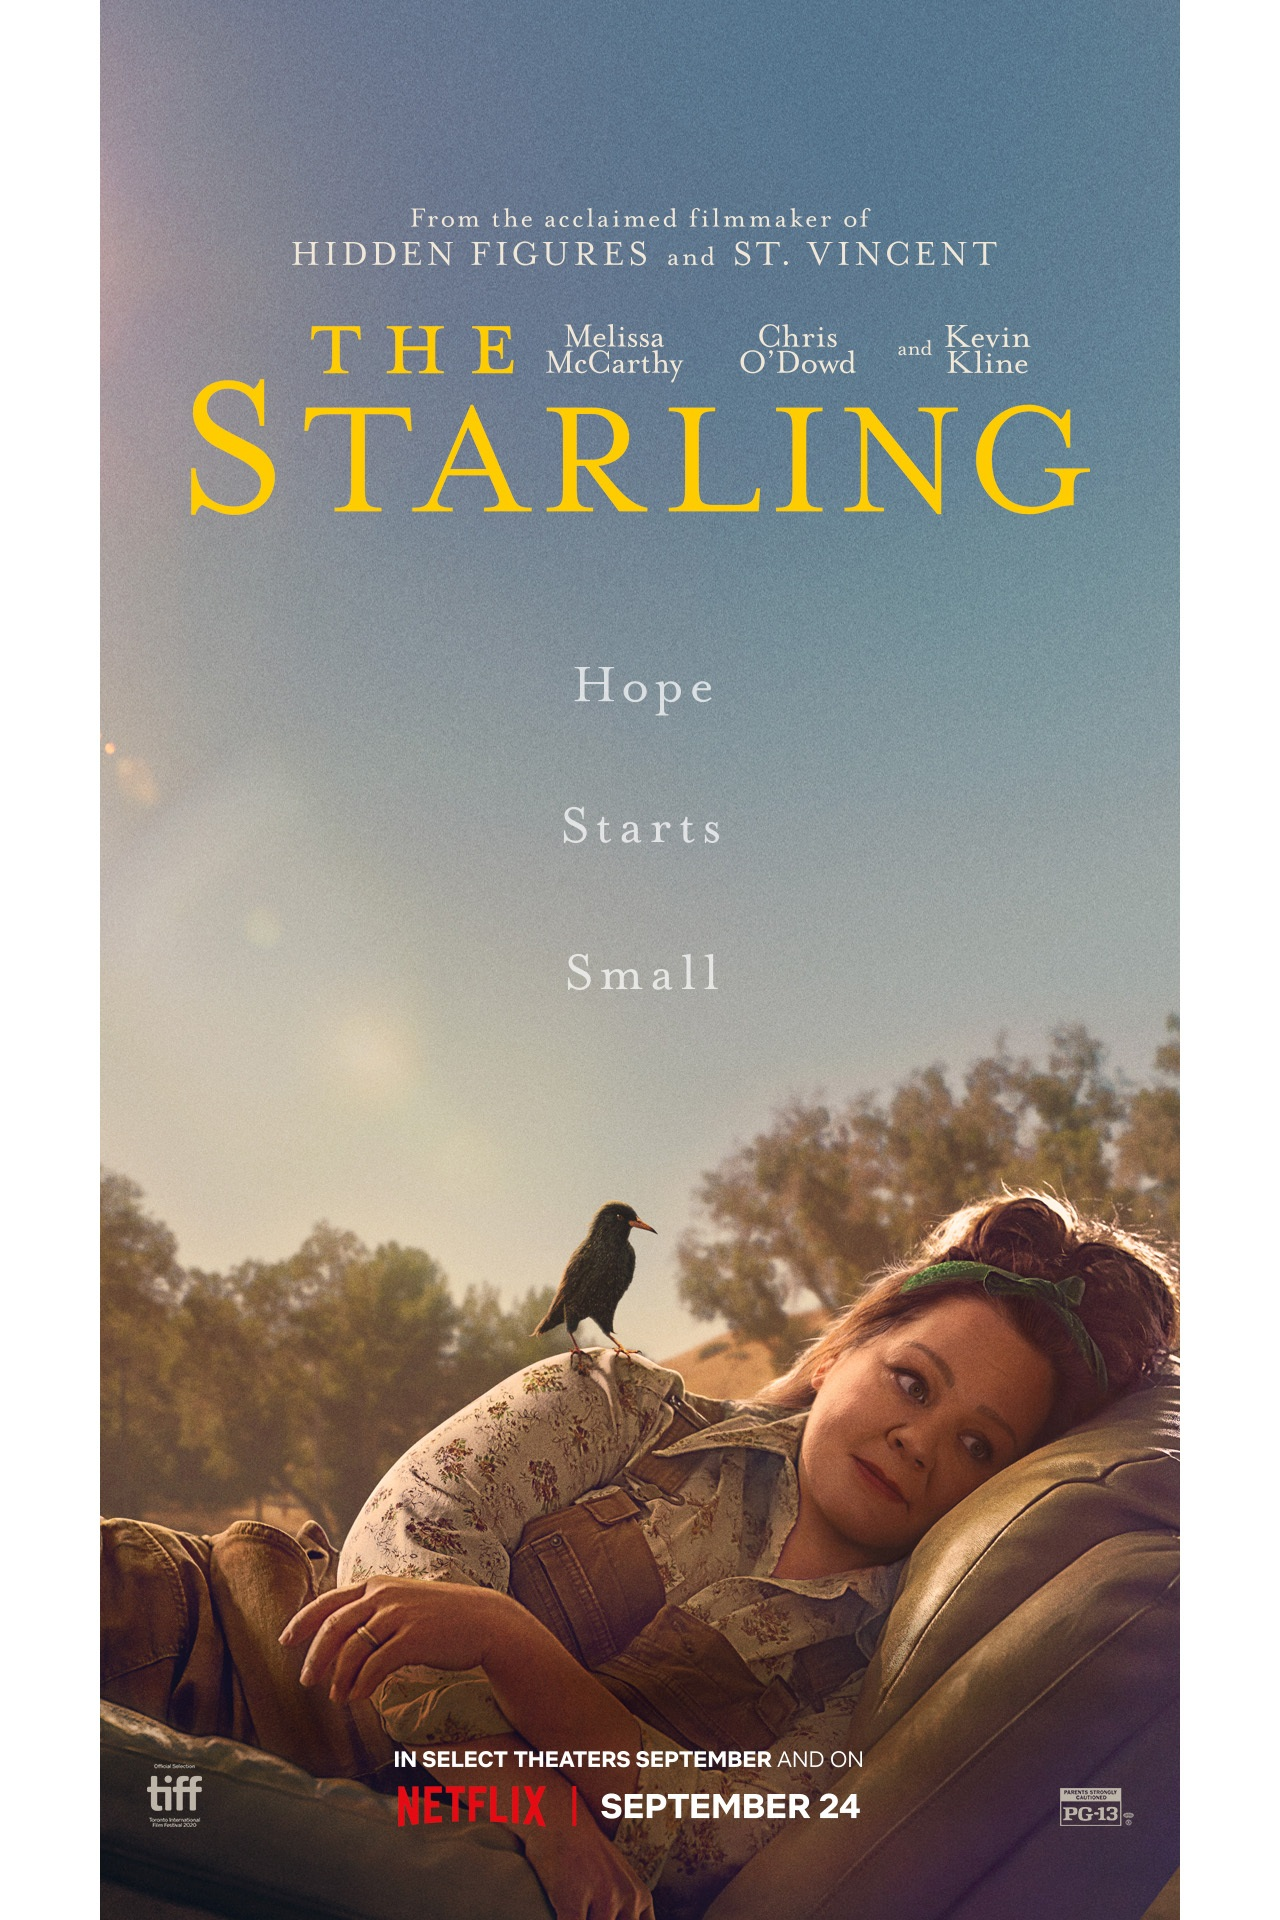 The Starling film poster